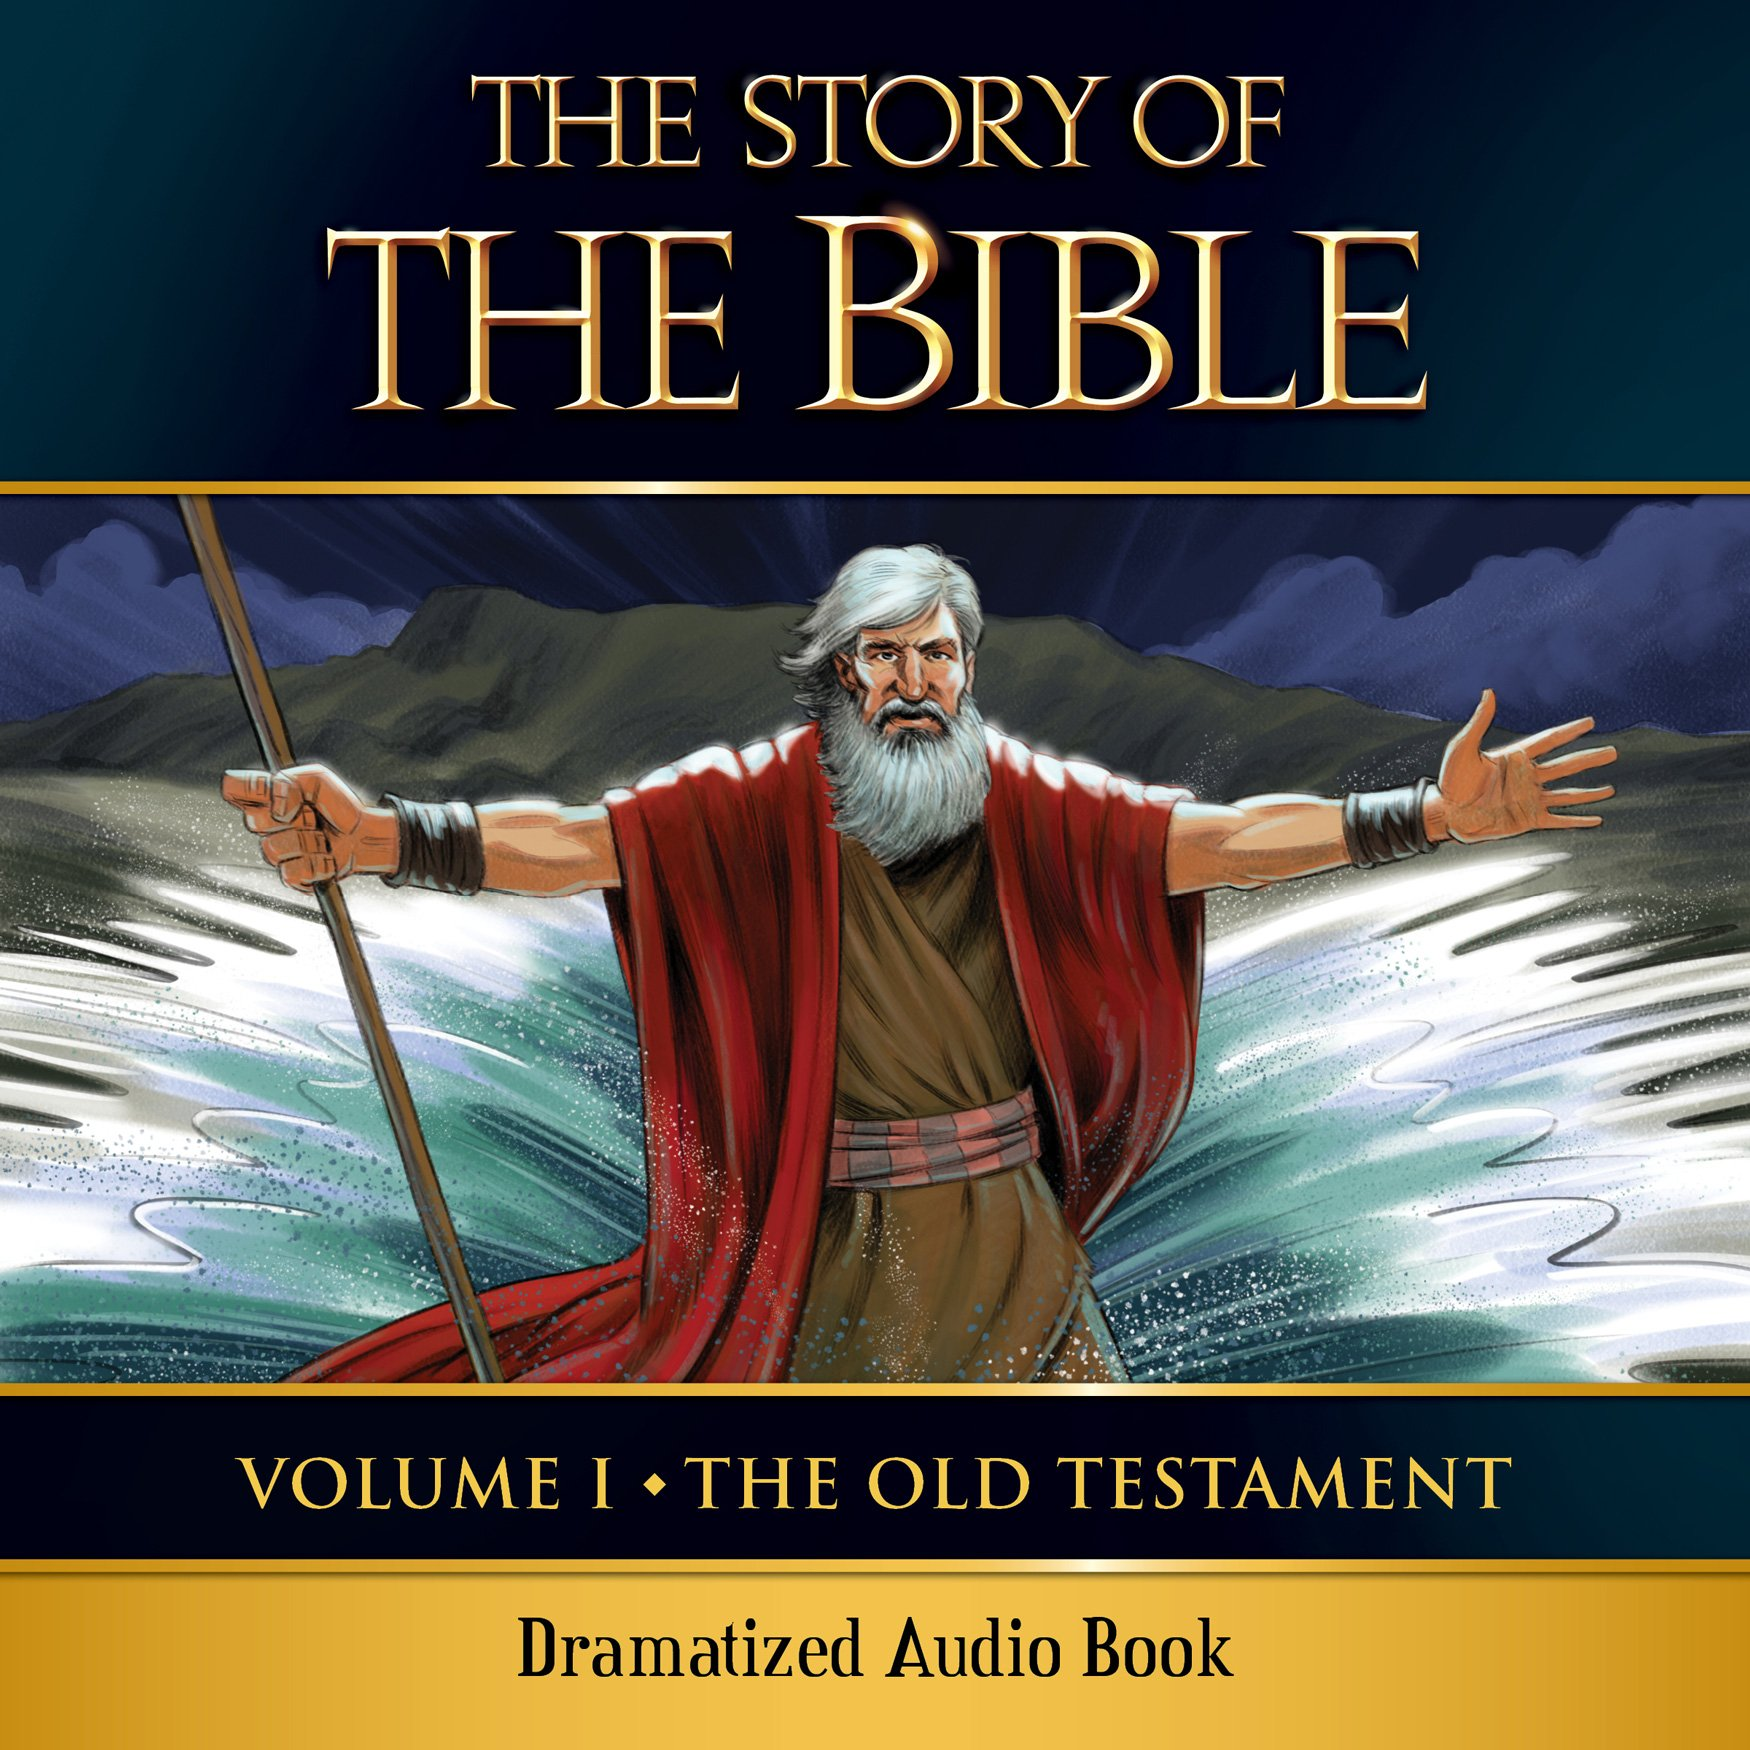 The Story of the Bible Audio Drama: Volume I - The Old Testament